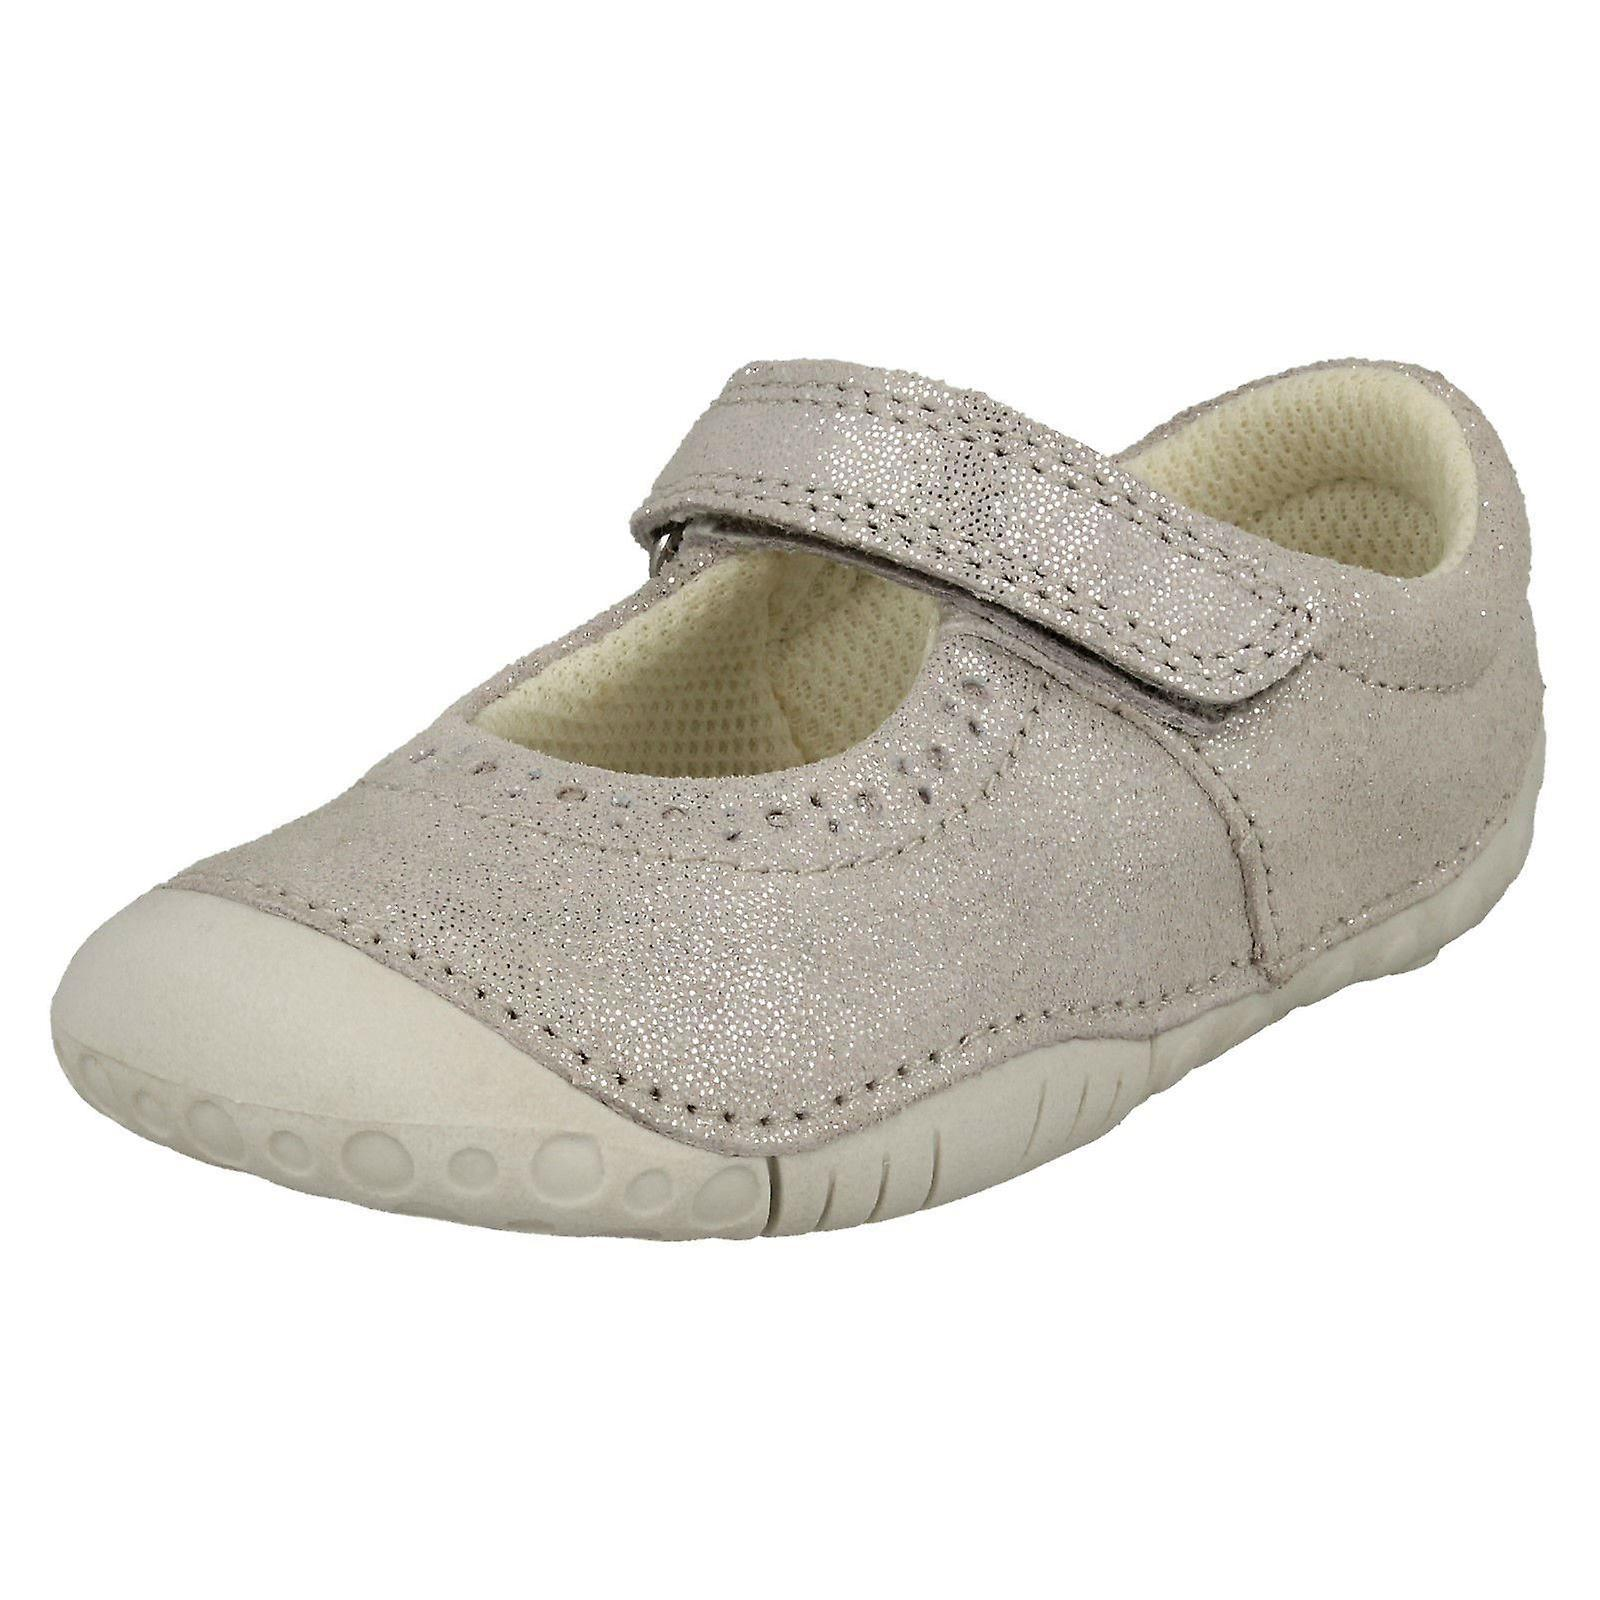 Girls Startrite Casual Shoes - Cruise - Silver Nubuck - Shoes UK Size 3.5F - EU Size 19.5 - US Size 4.5 0dfe73